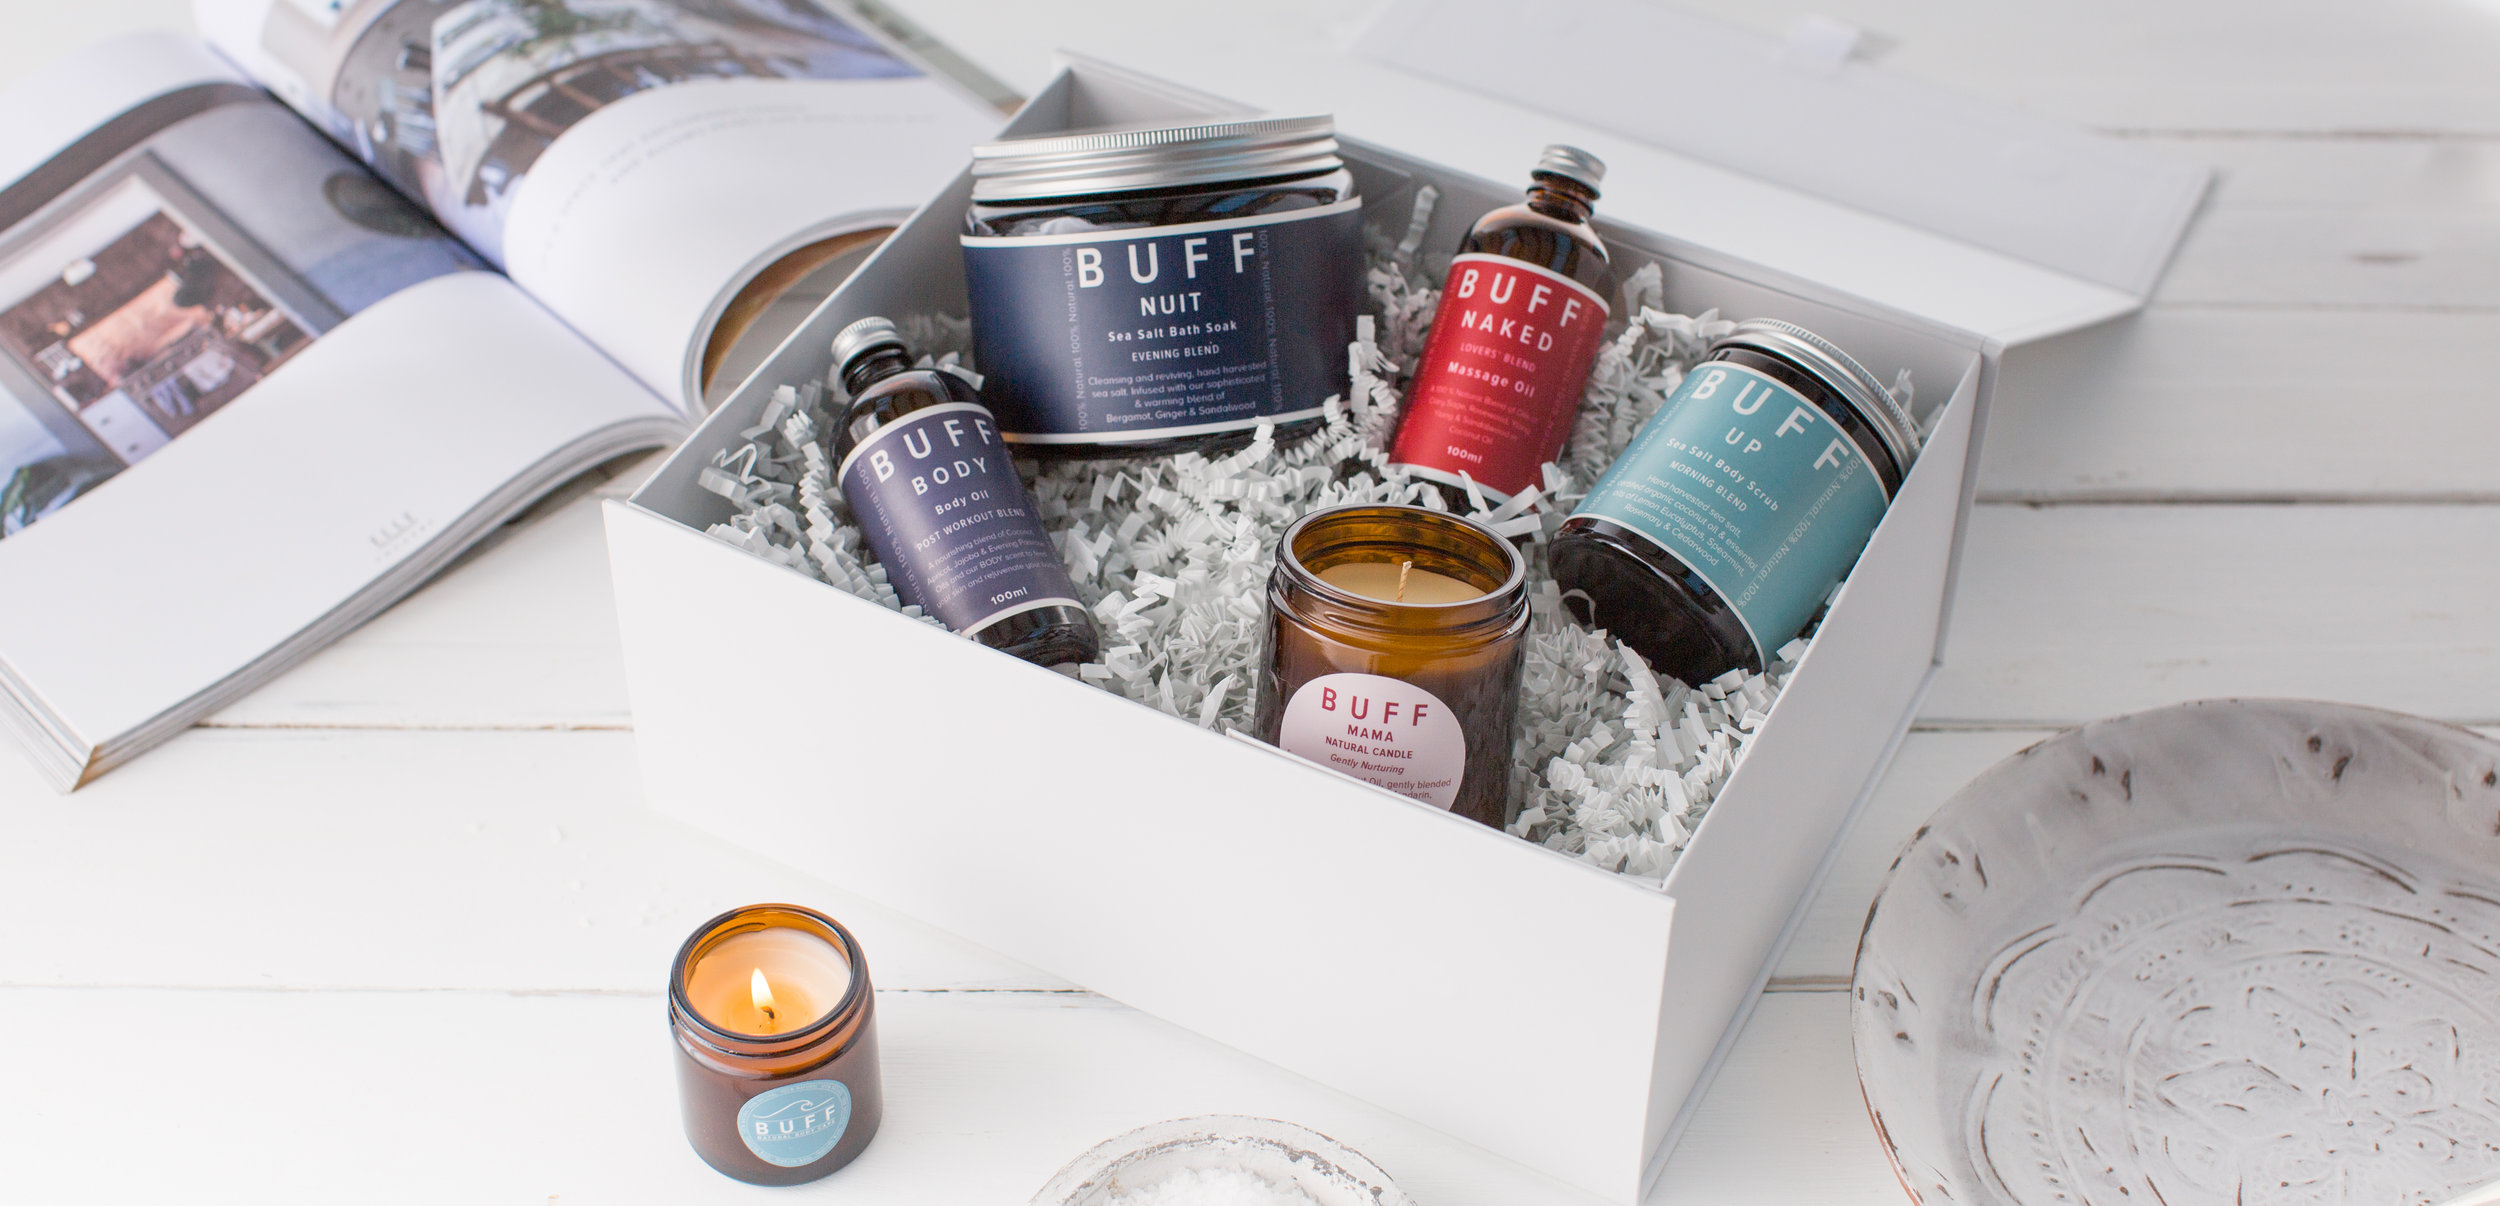 BUFF NATURAL BODY CARE 100 % Natural, Hand made in Ashburton, Luxury Body Treatments in 5 Sumptuous Scents taking you from Morning till Night..